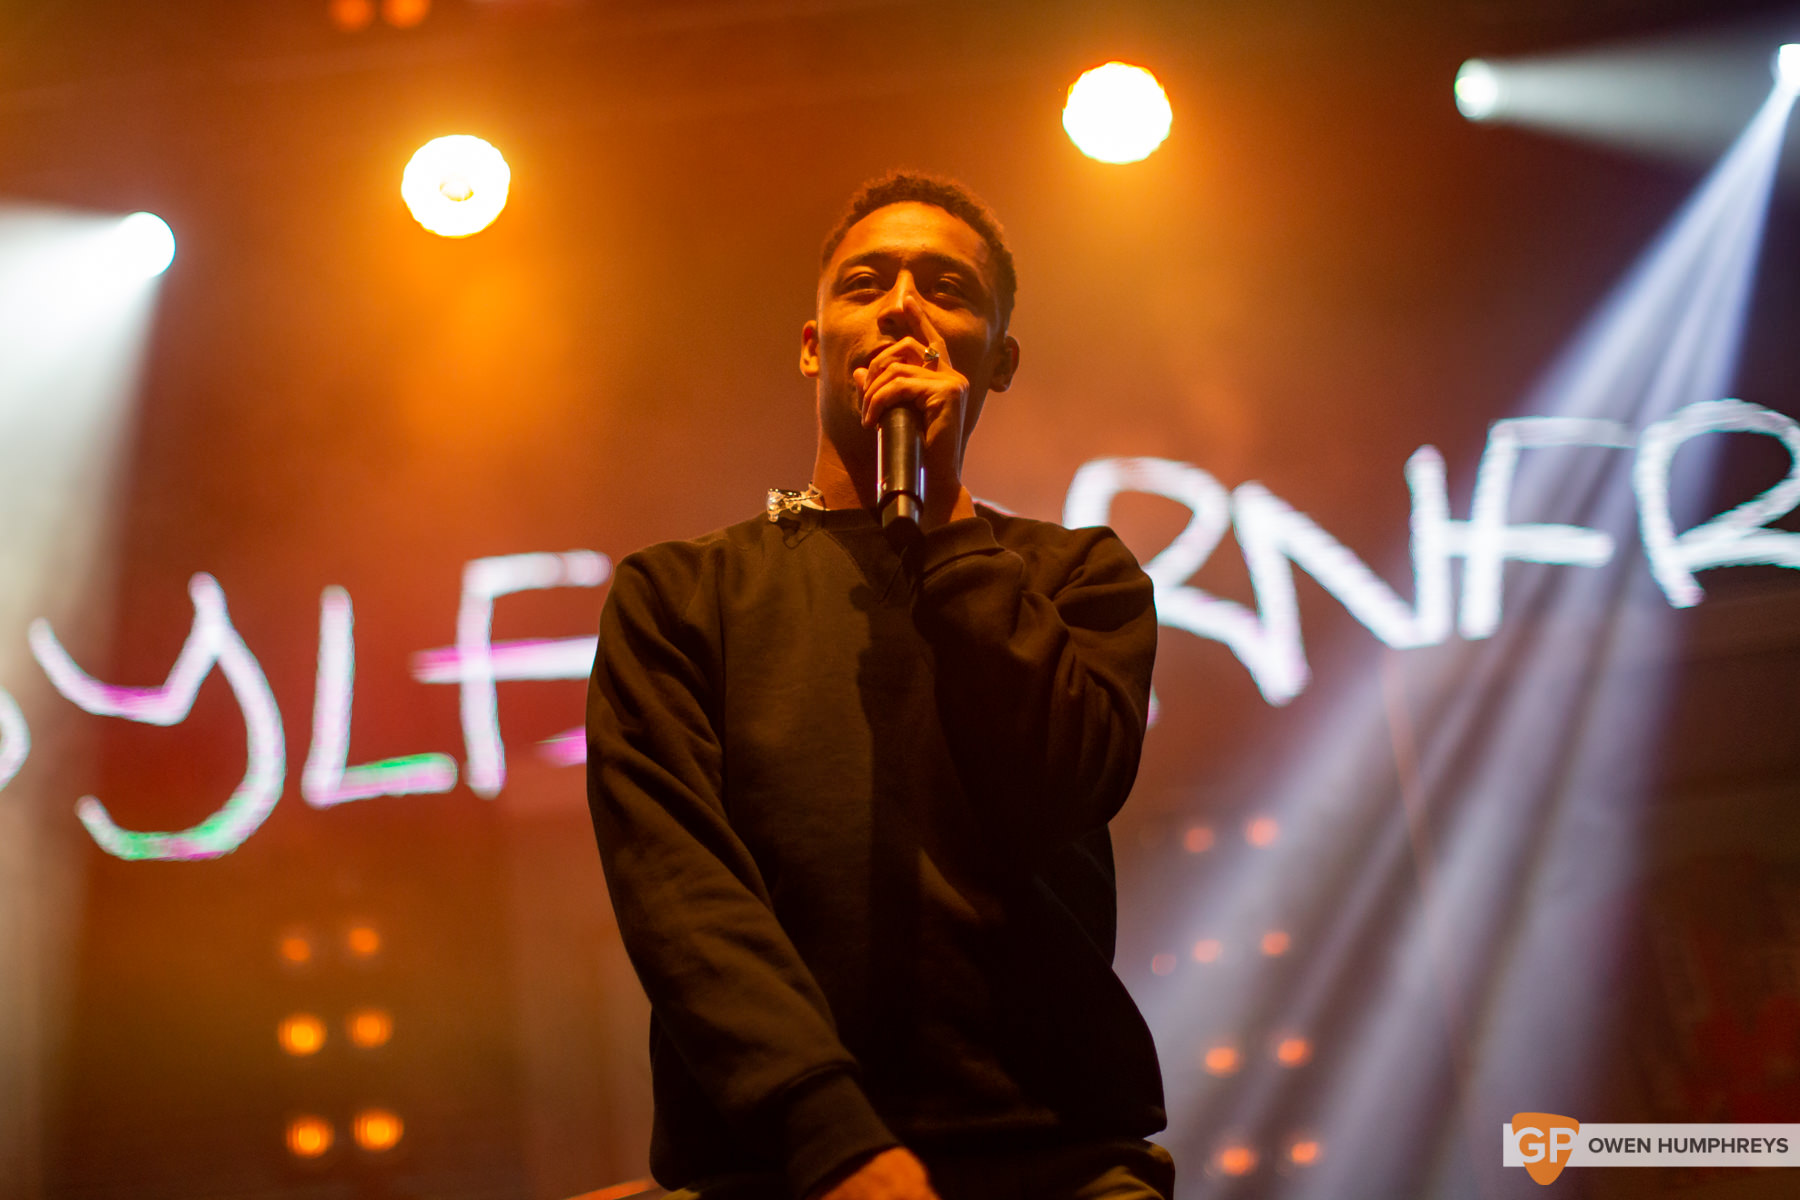 Loyle Carner at All Together Now 2019. Photo by Owen Humphreys. www.owen.ie